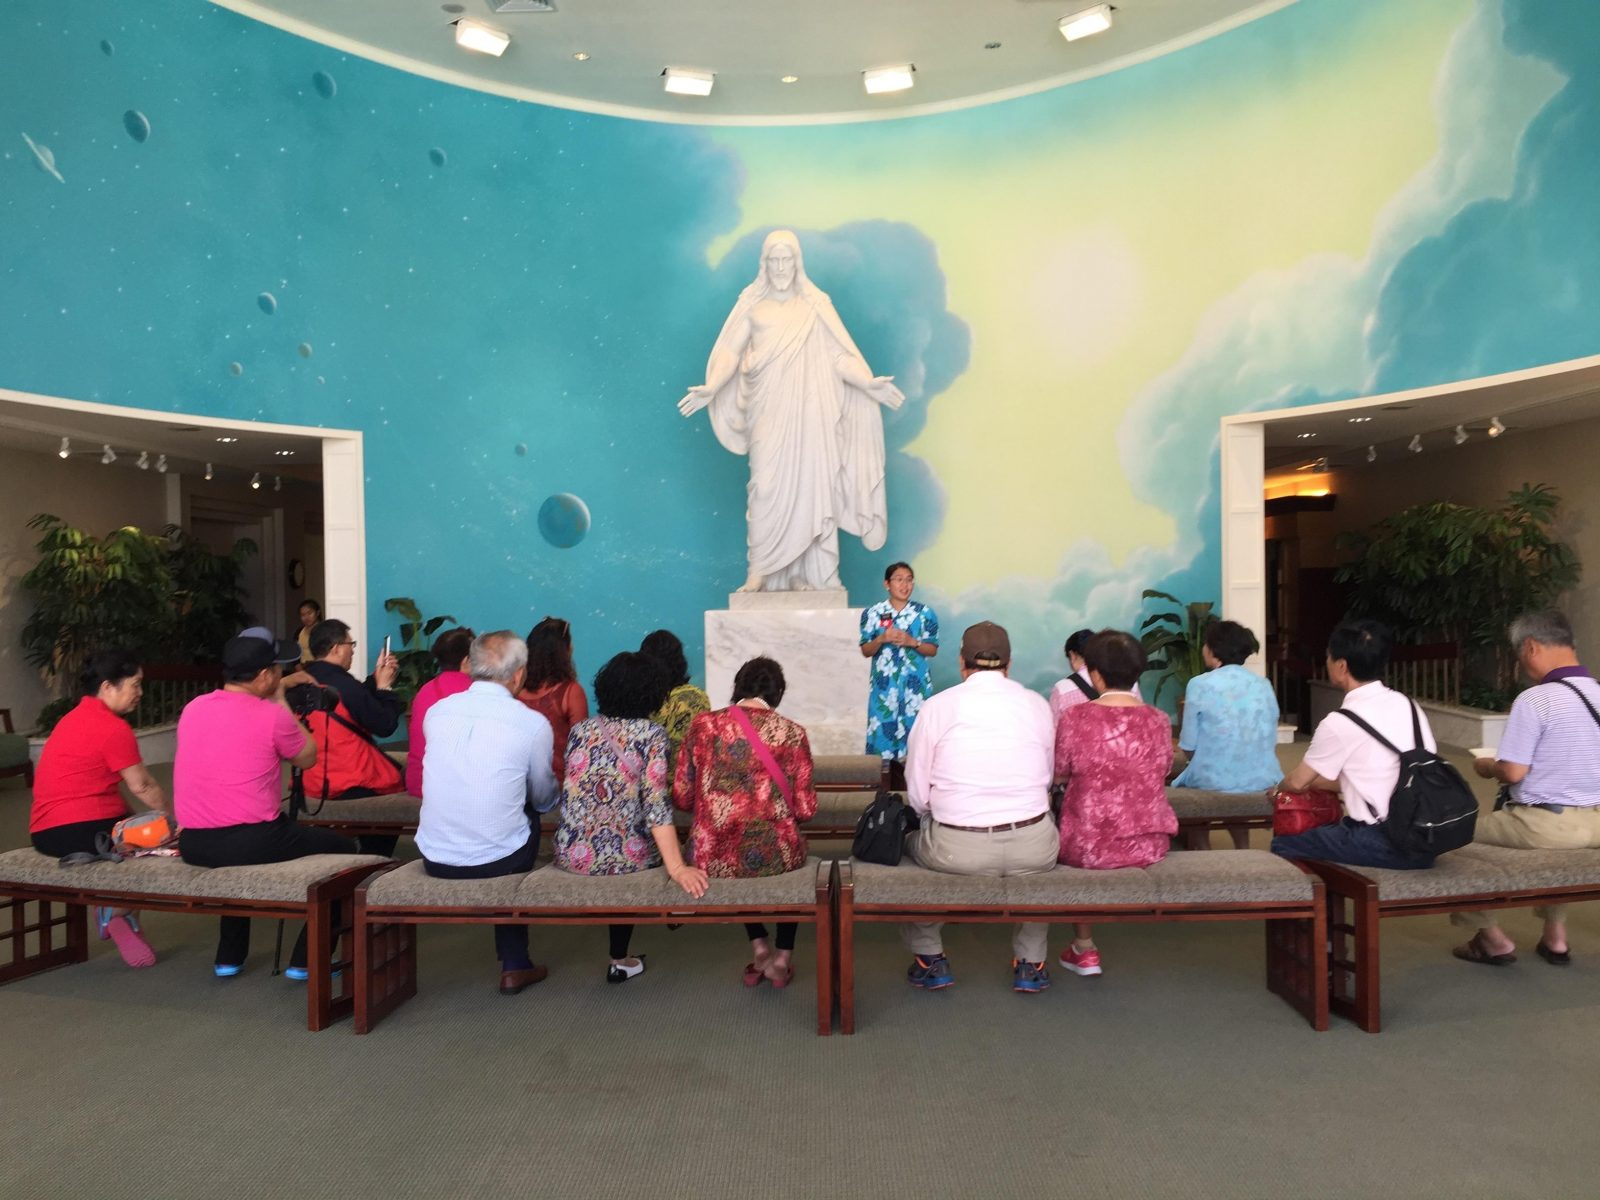 How a Simple Act of Curiosity Turned Into Thousands of Chinese Tourists Learning About the Church